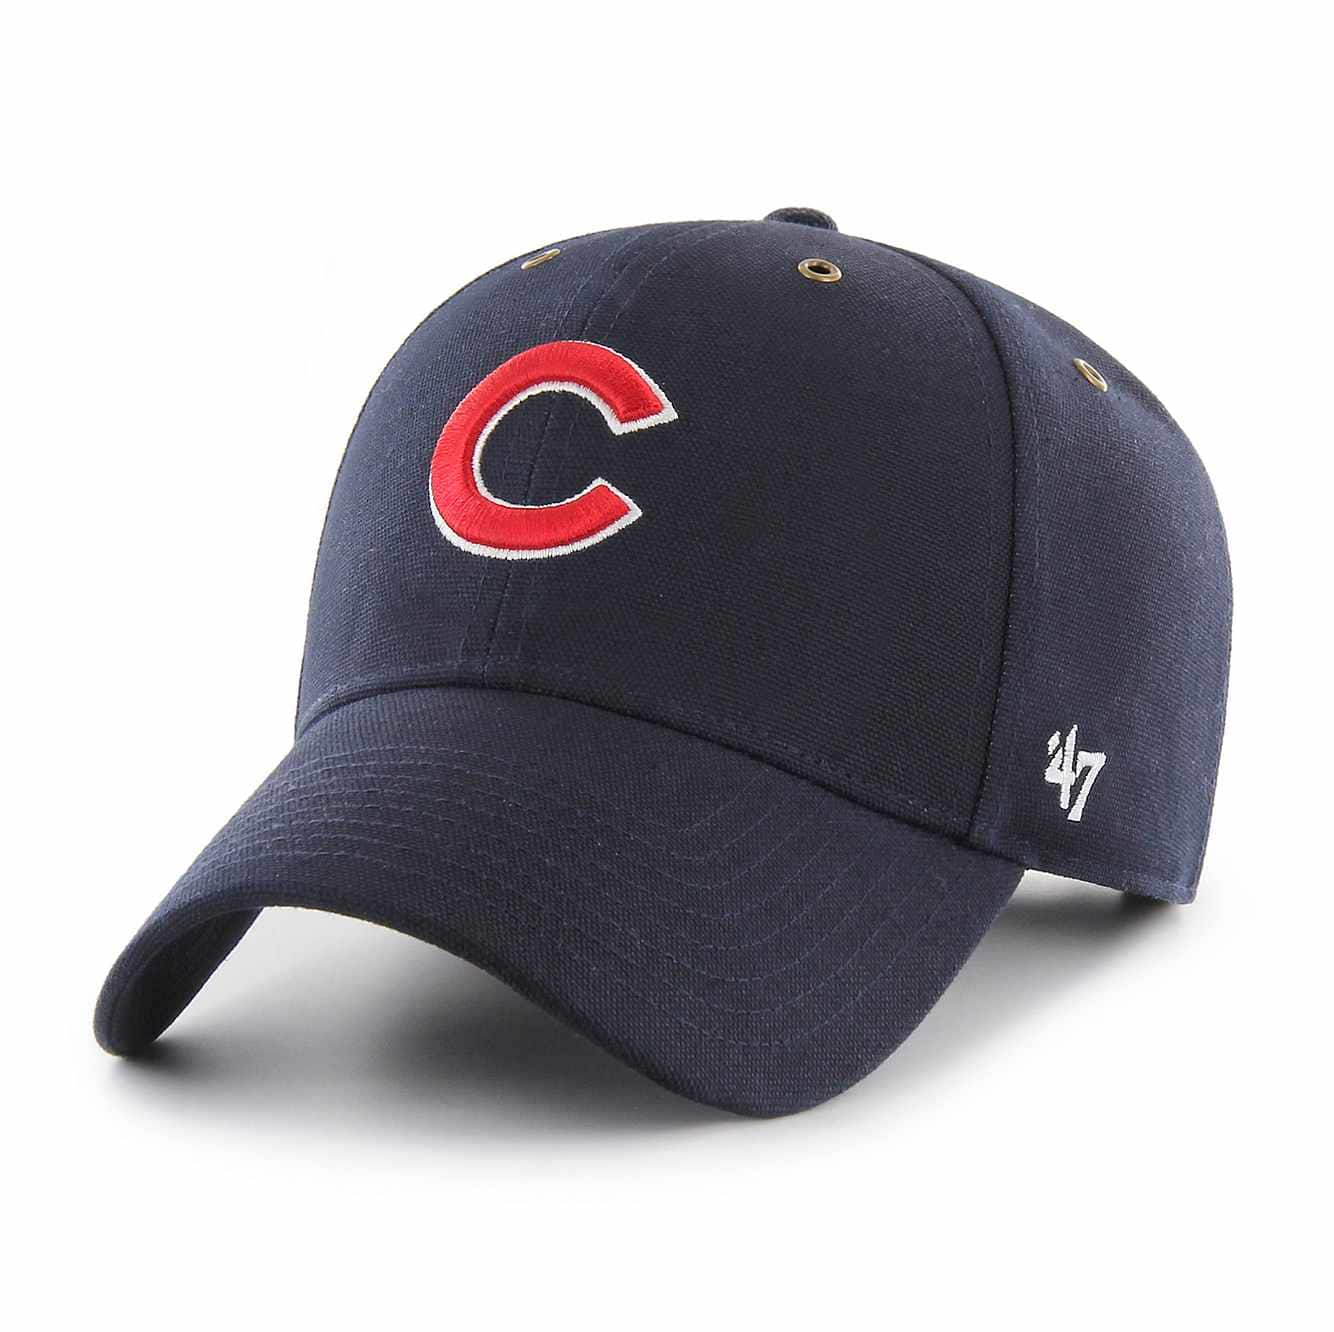 Picture of Chicago Cubs Carhartt x '47 MVP in Navy